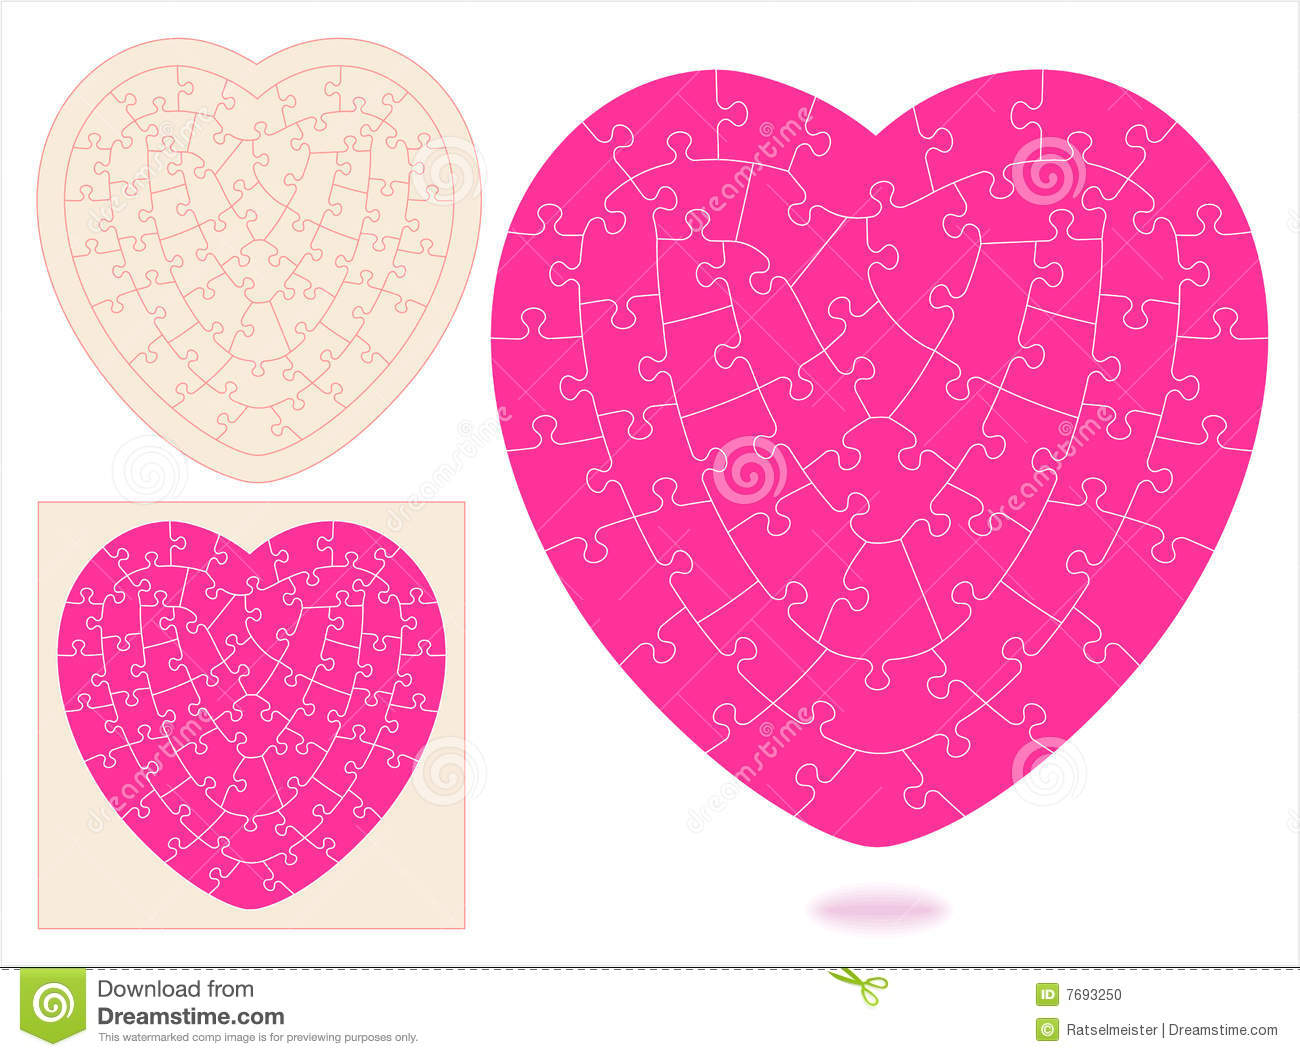 Heart Shapes Templates Heart-shaped jigsaw puzzle